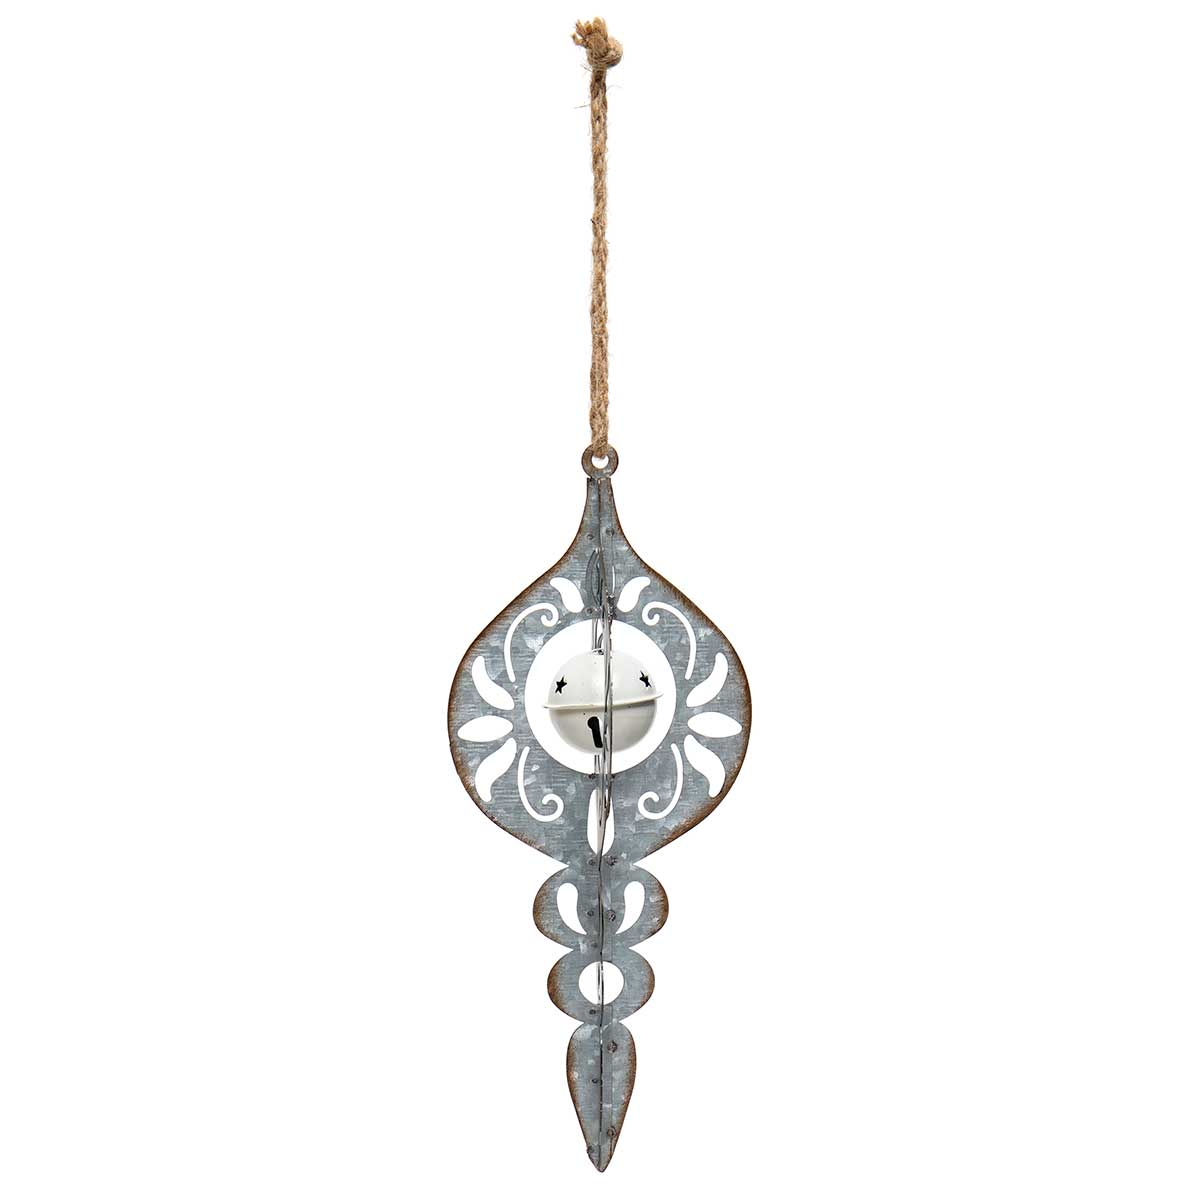 METAL FINIAL ORNAMENT WITH JINGLE BELL